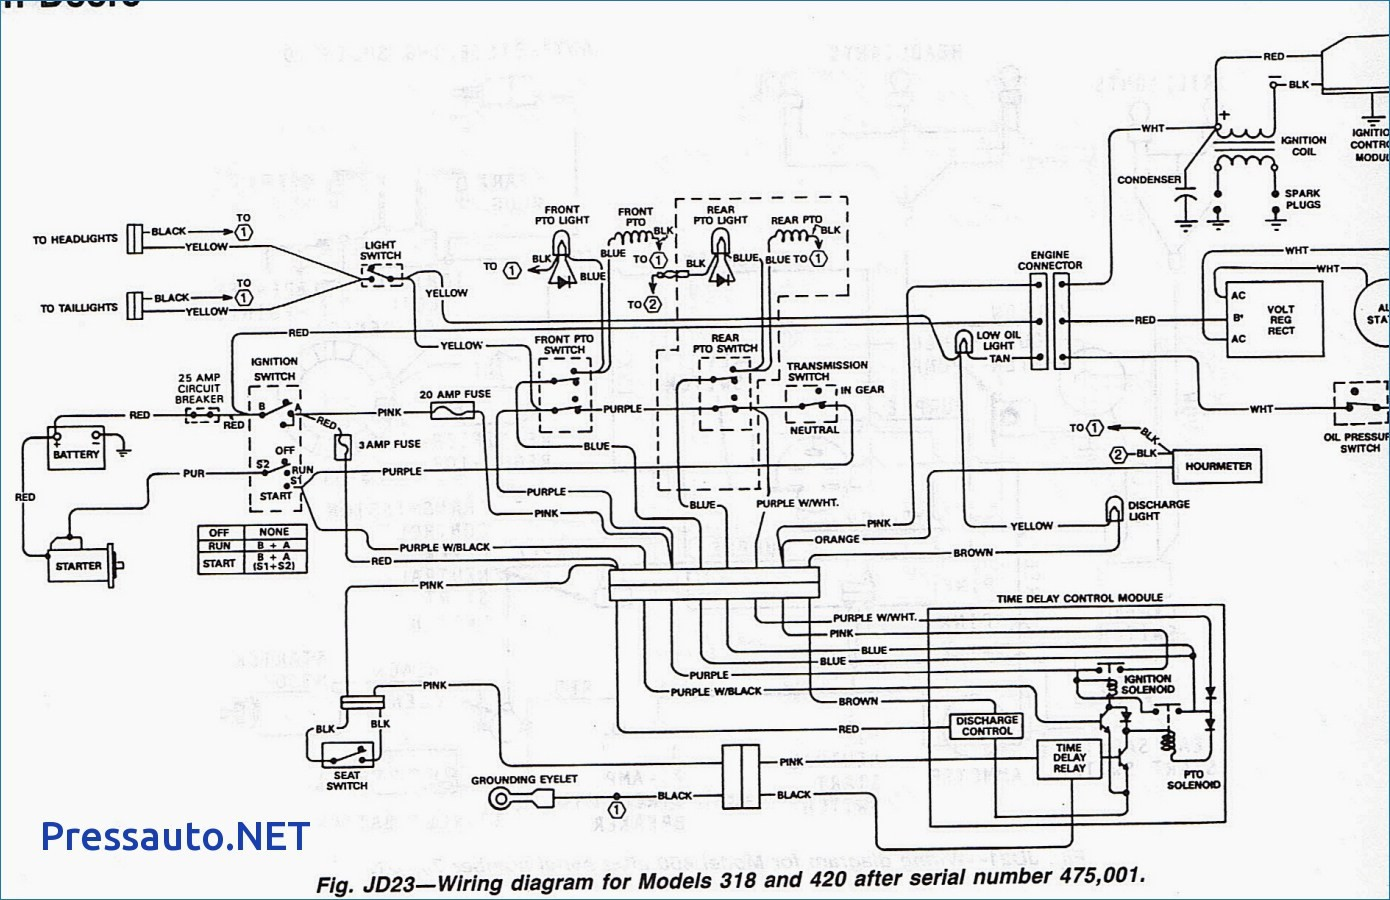 hight resolution of stx46 wiring diagram wiring diagram tutorial john deere stx46 wiring diagram circuit diagrams basic electronicsjohn deere